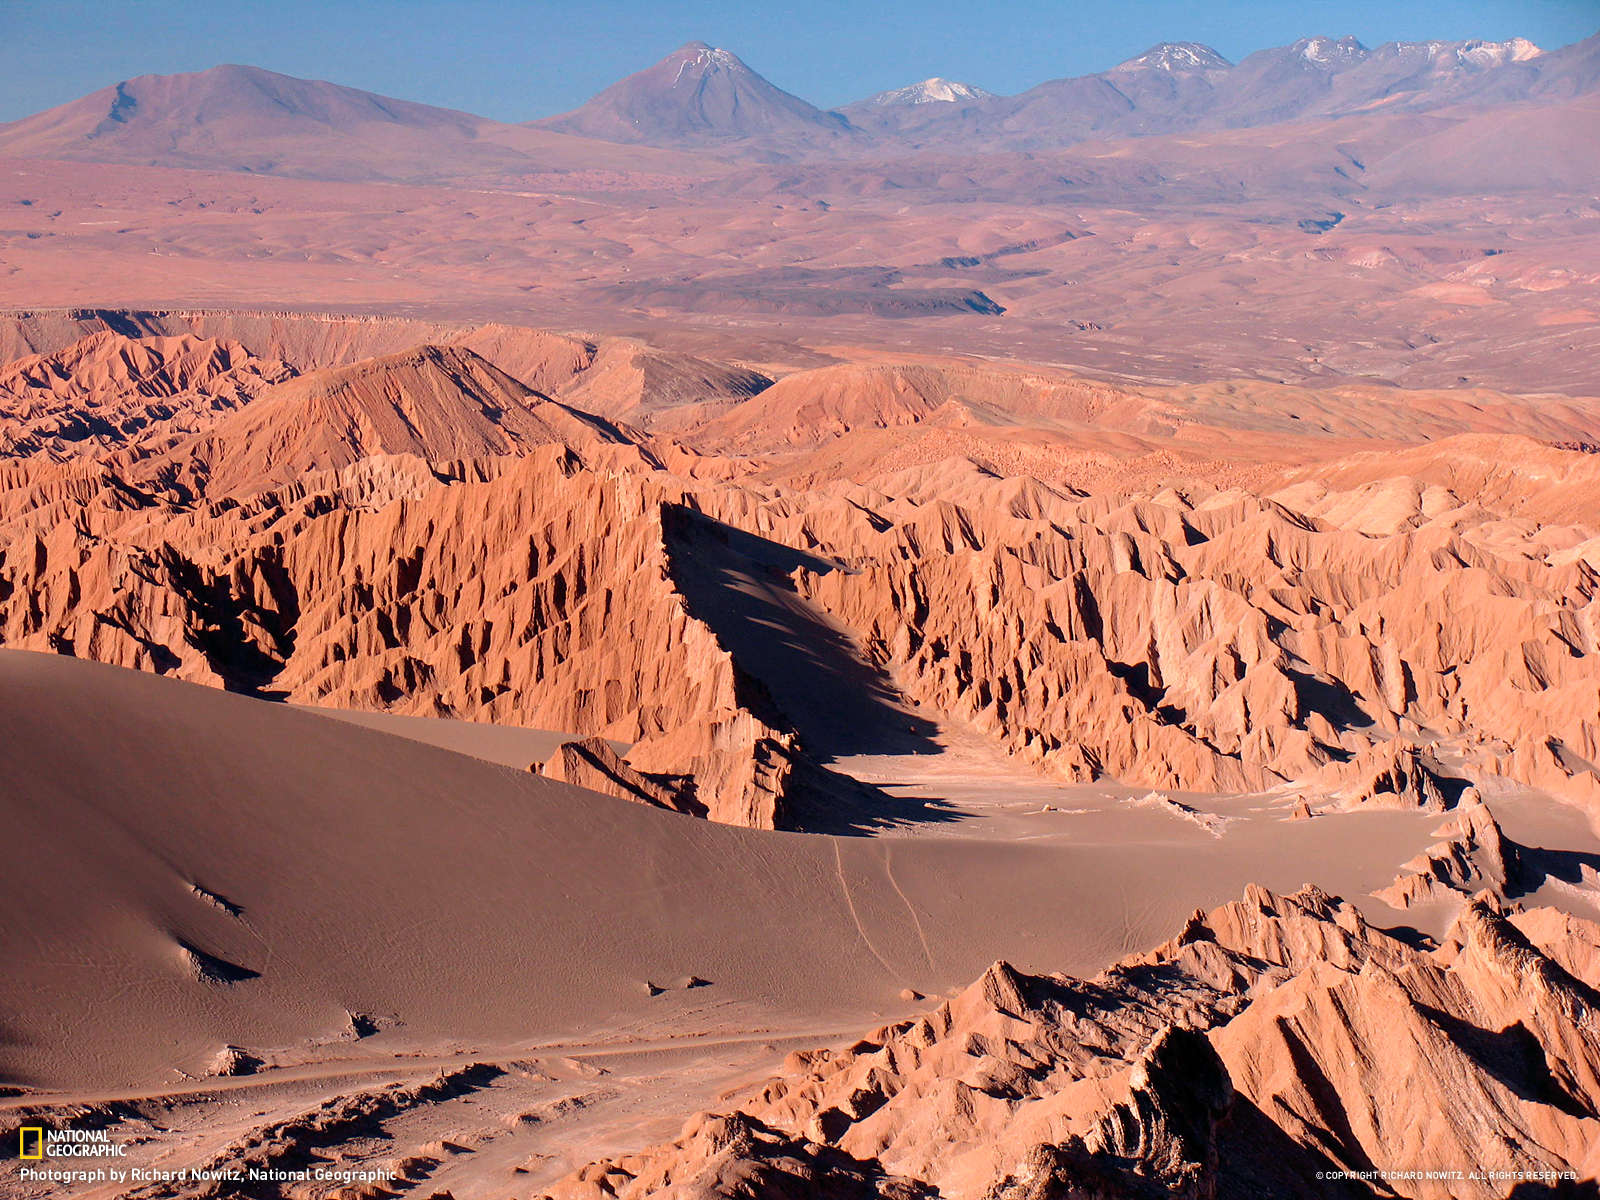 The Atacama desert in Norther Chile. CJC airport is nearby. Photo from National Geographic.